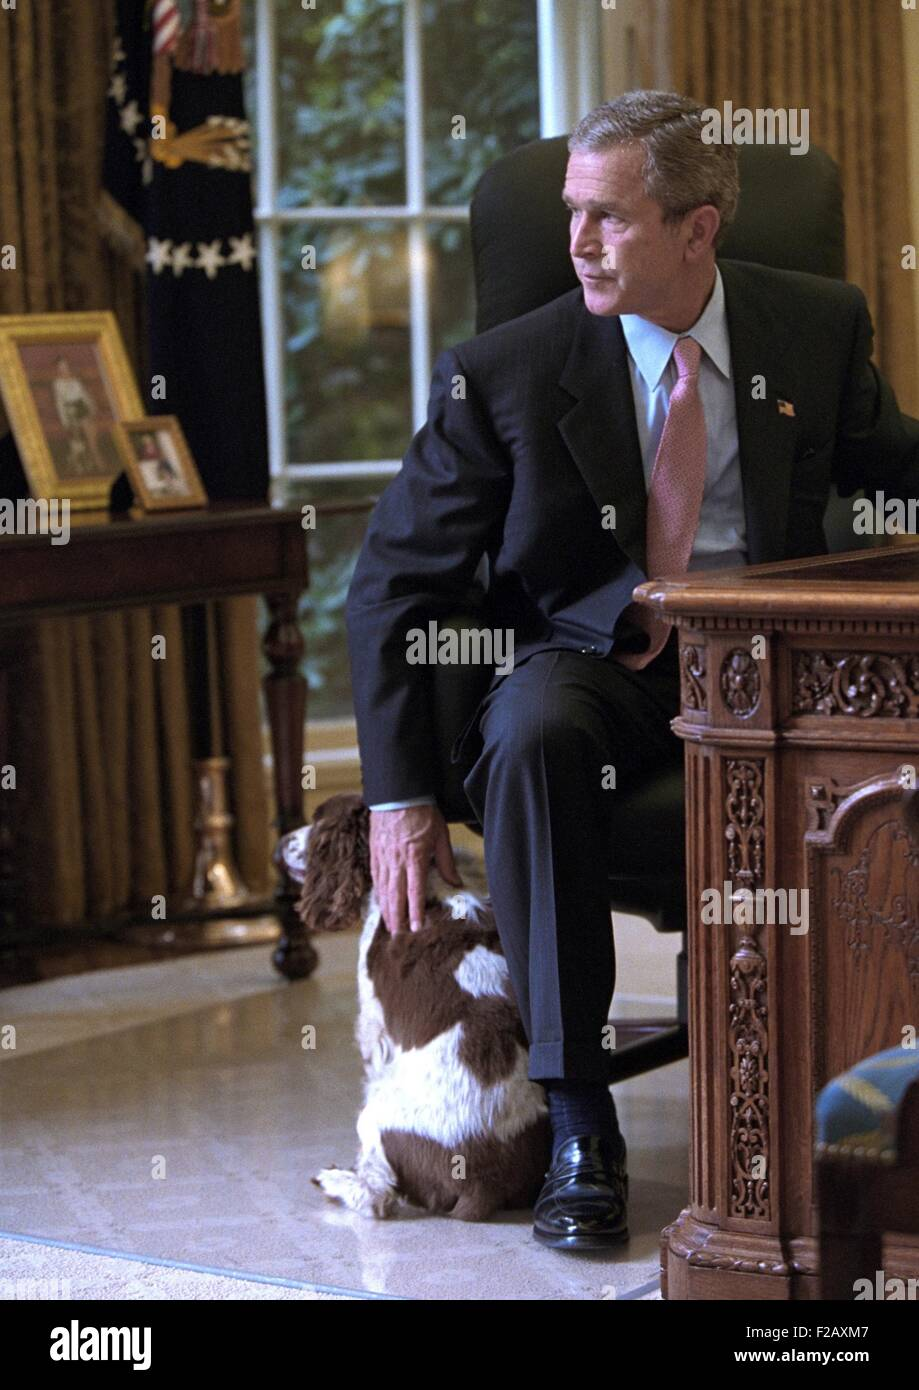 president in oval office. President George W. Bush Pets Spot In The Oval Office Of White House. Oct. 1, 2001. (BSLOC20152170 I